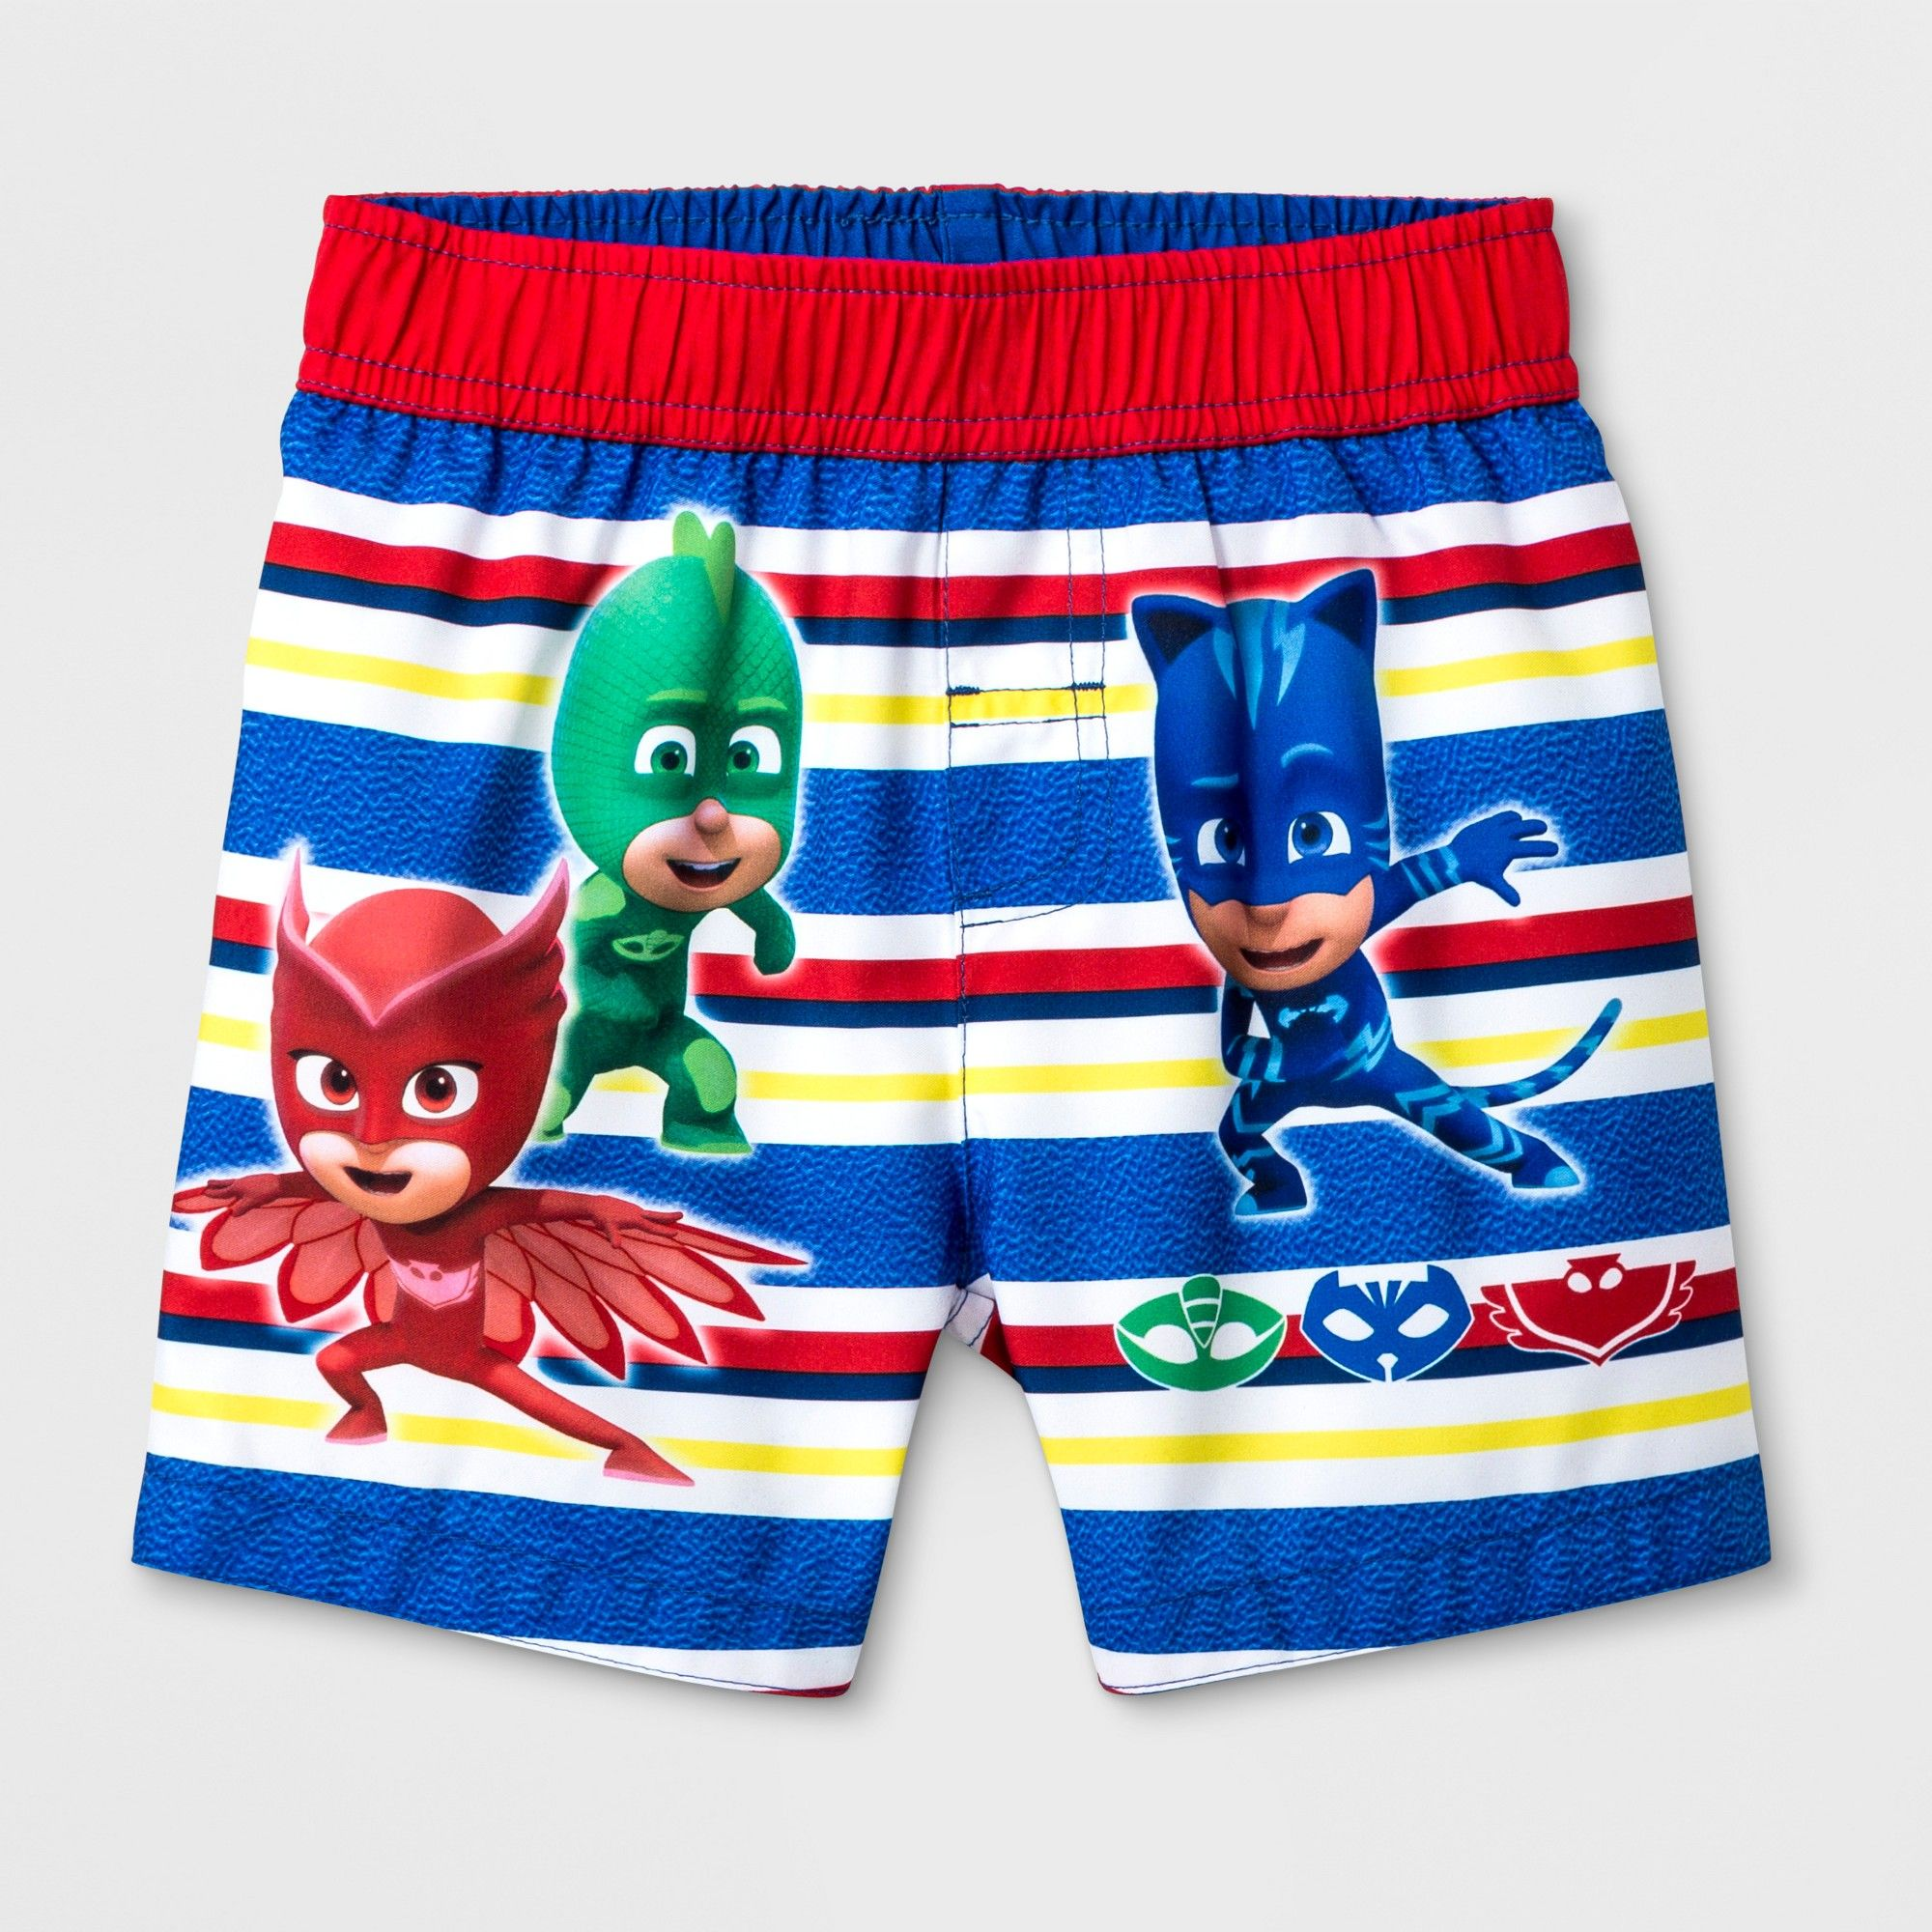 01d6f87883e86 Toddler Boys' PJ Masks Swim Trunks - Blue 4T in 2019 | Carson | Swim ...